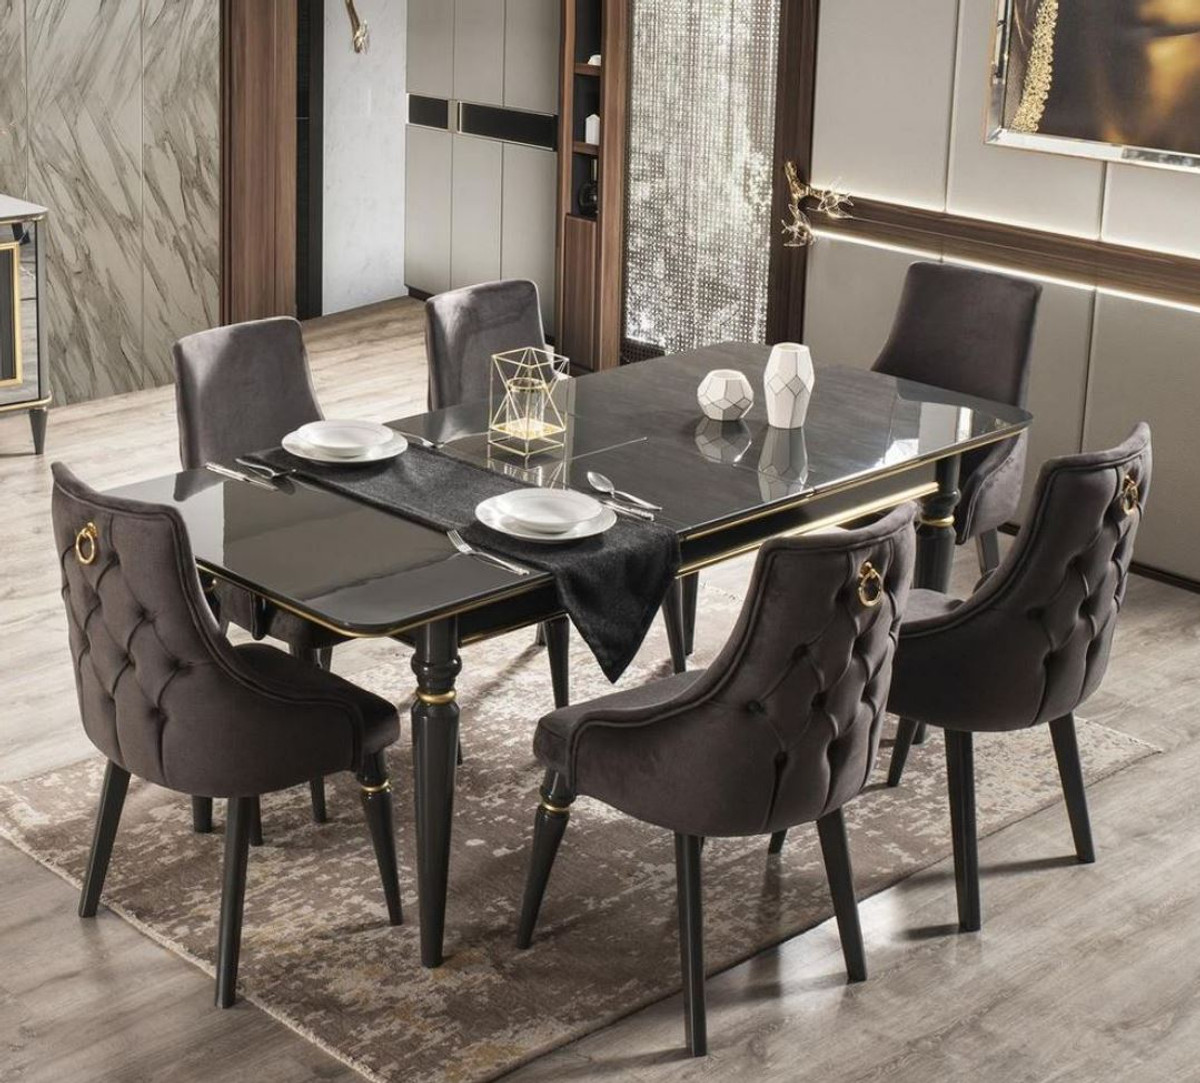 Picture of: Casa Padrino Luxury Art Deco Dining Room Set Gray Black Gold 1 Extendable Dining Room Table 6 Dining Chairs Art Deco Dining Furniture Luxury Quality